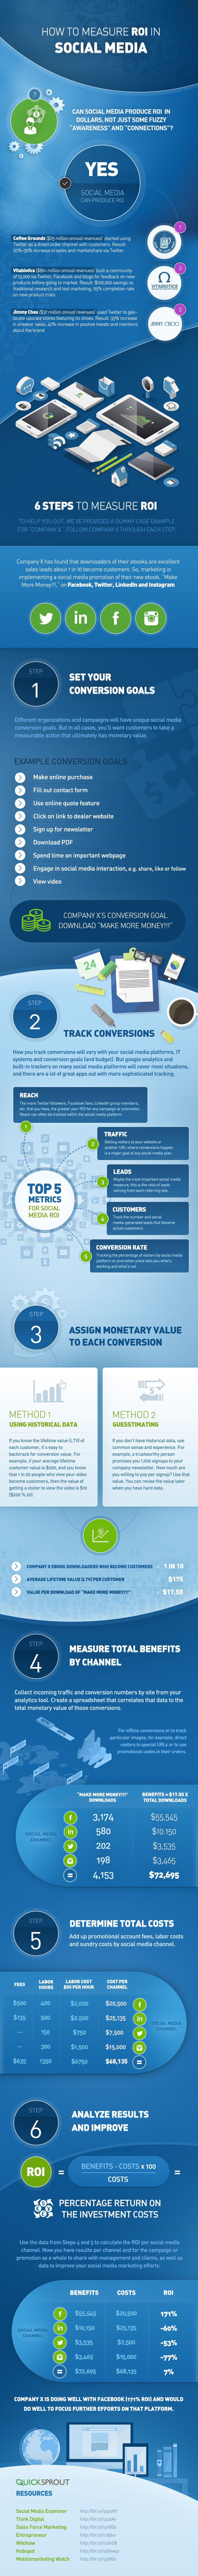 6 Steps To Measure the ROI of Your Social Media Marketing Campaigns - #infographic